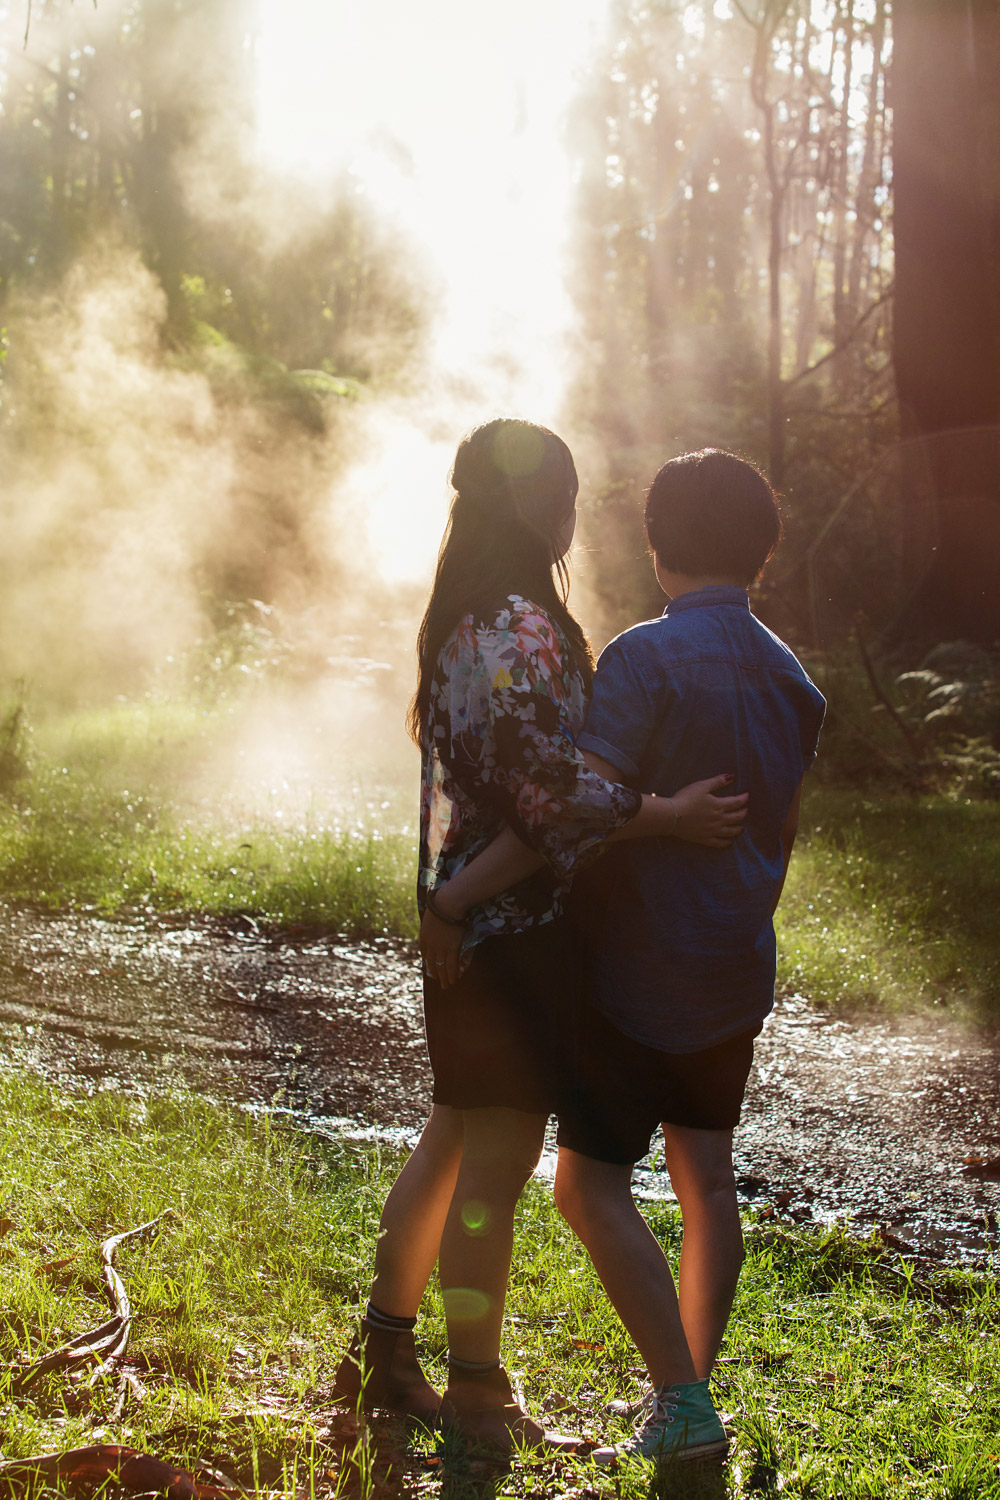 015 same sex engagment photography melbourne.jpg